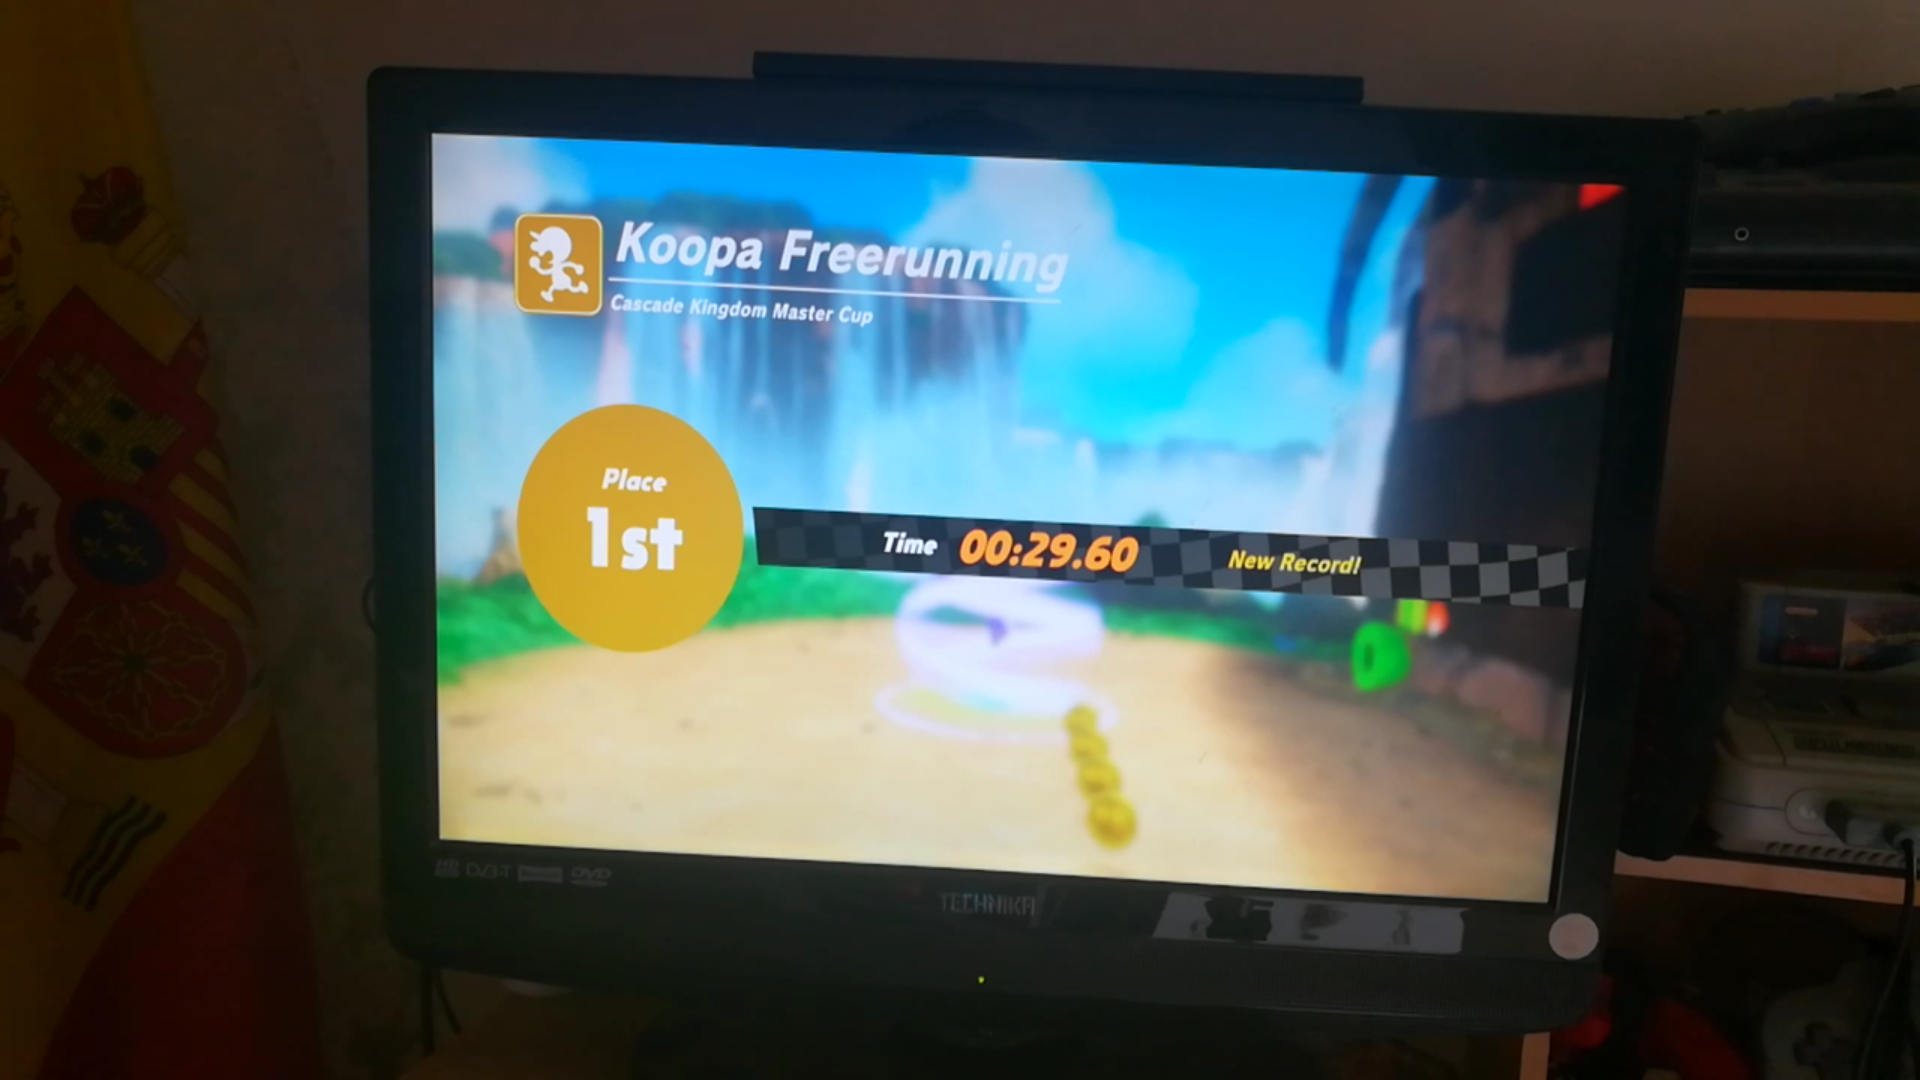 Super Mario Odyssey: Koopa Freerunning: Cascade Kingdom time of 0:00:29.6